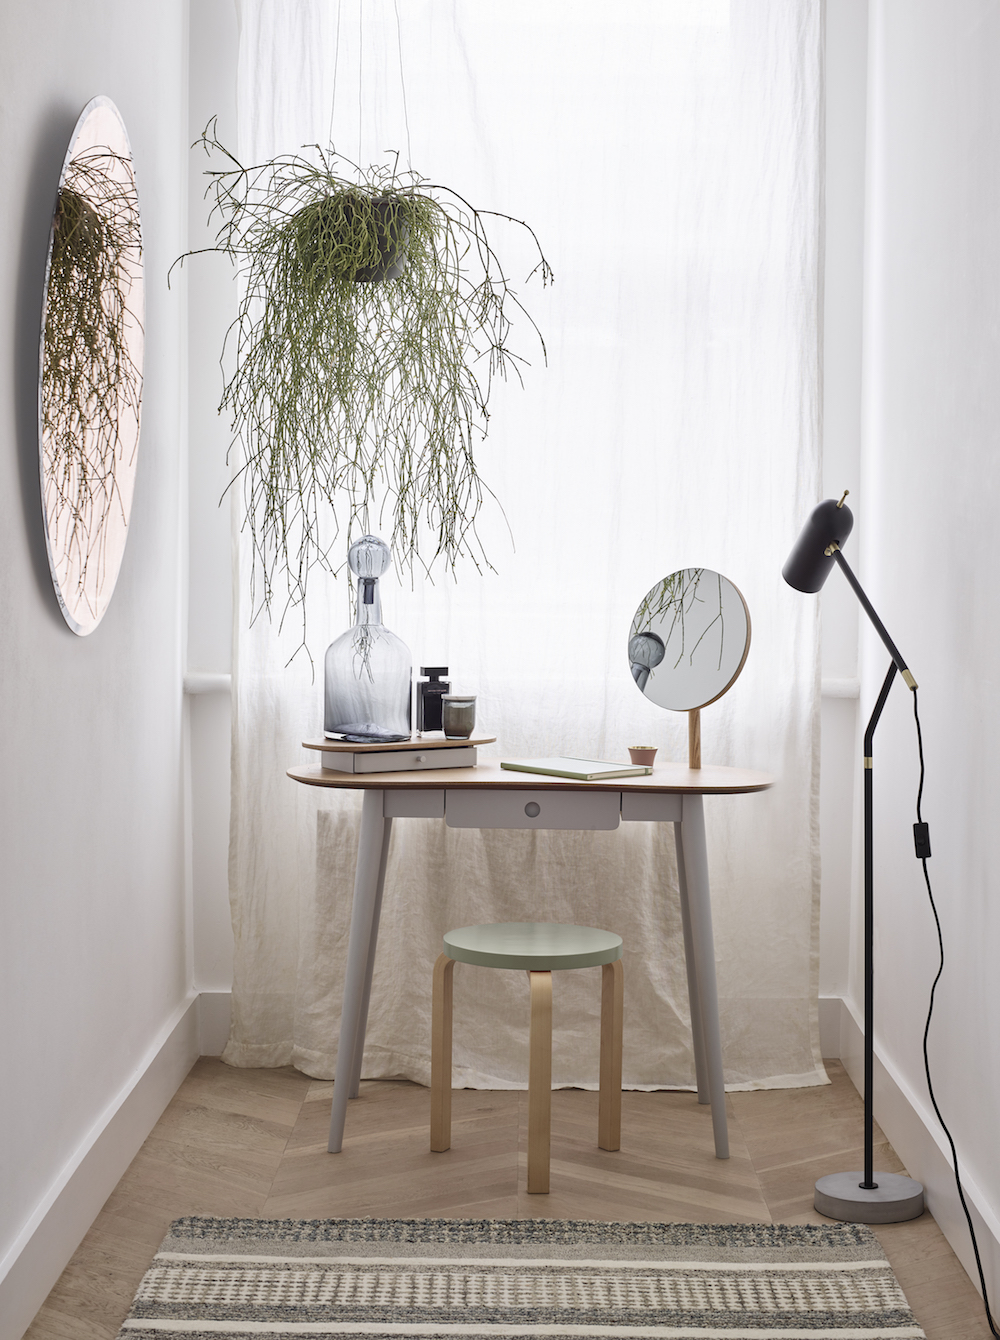 Greyson Dressing Table £350, Artek Stool 60 Birch & White £180.40